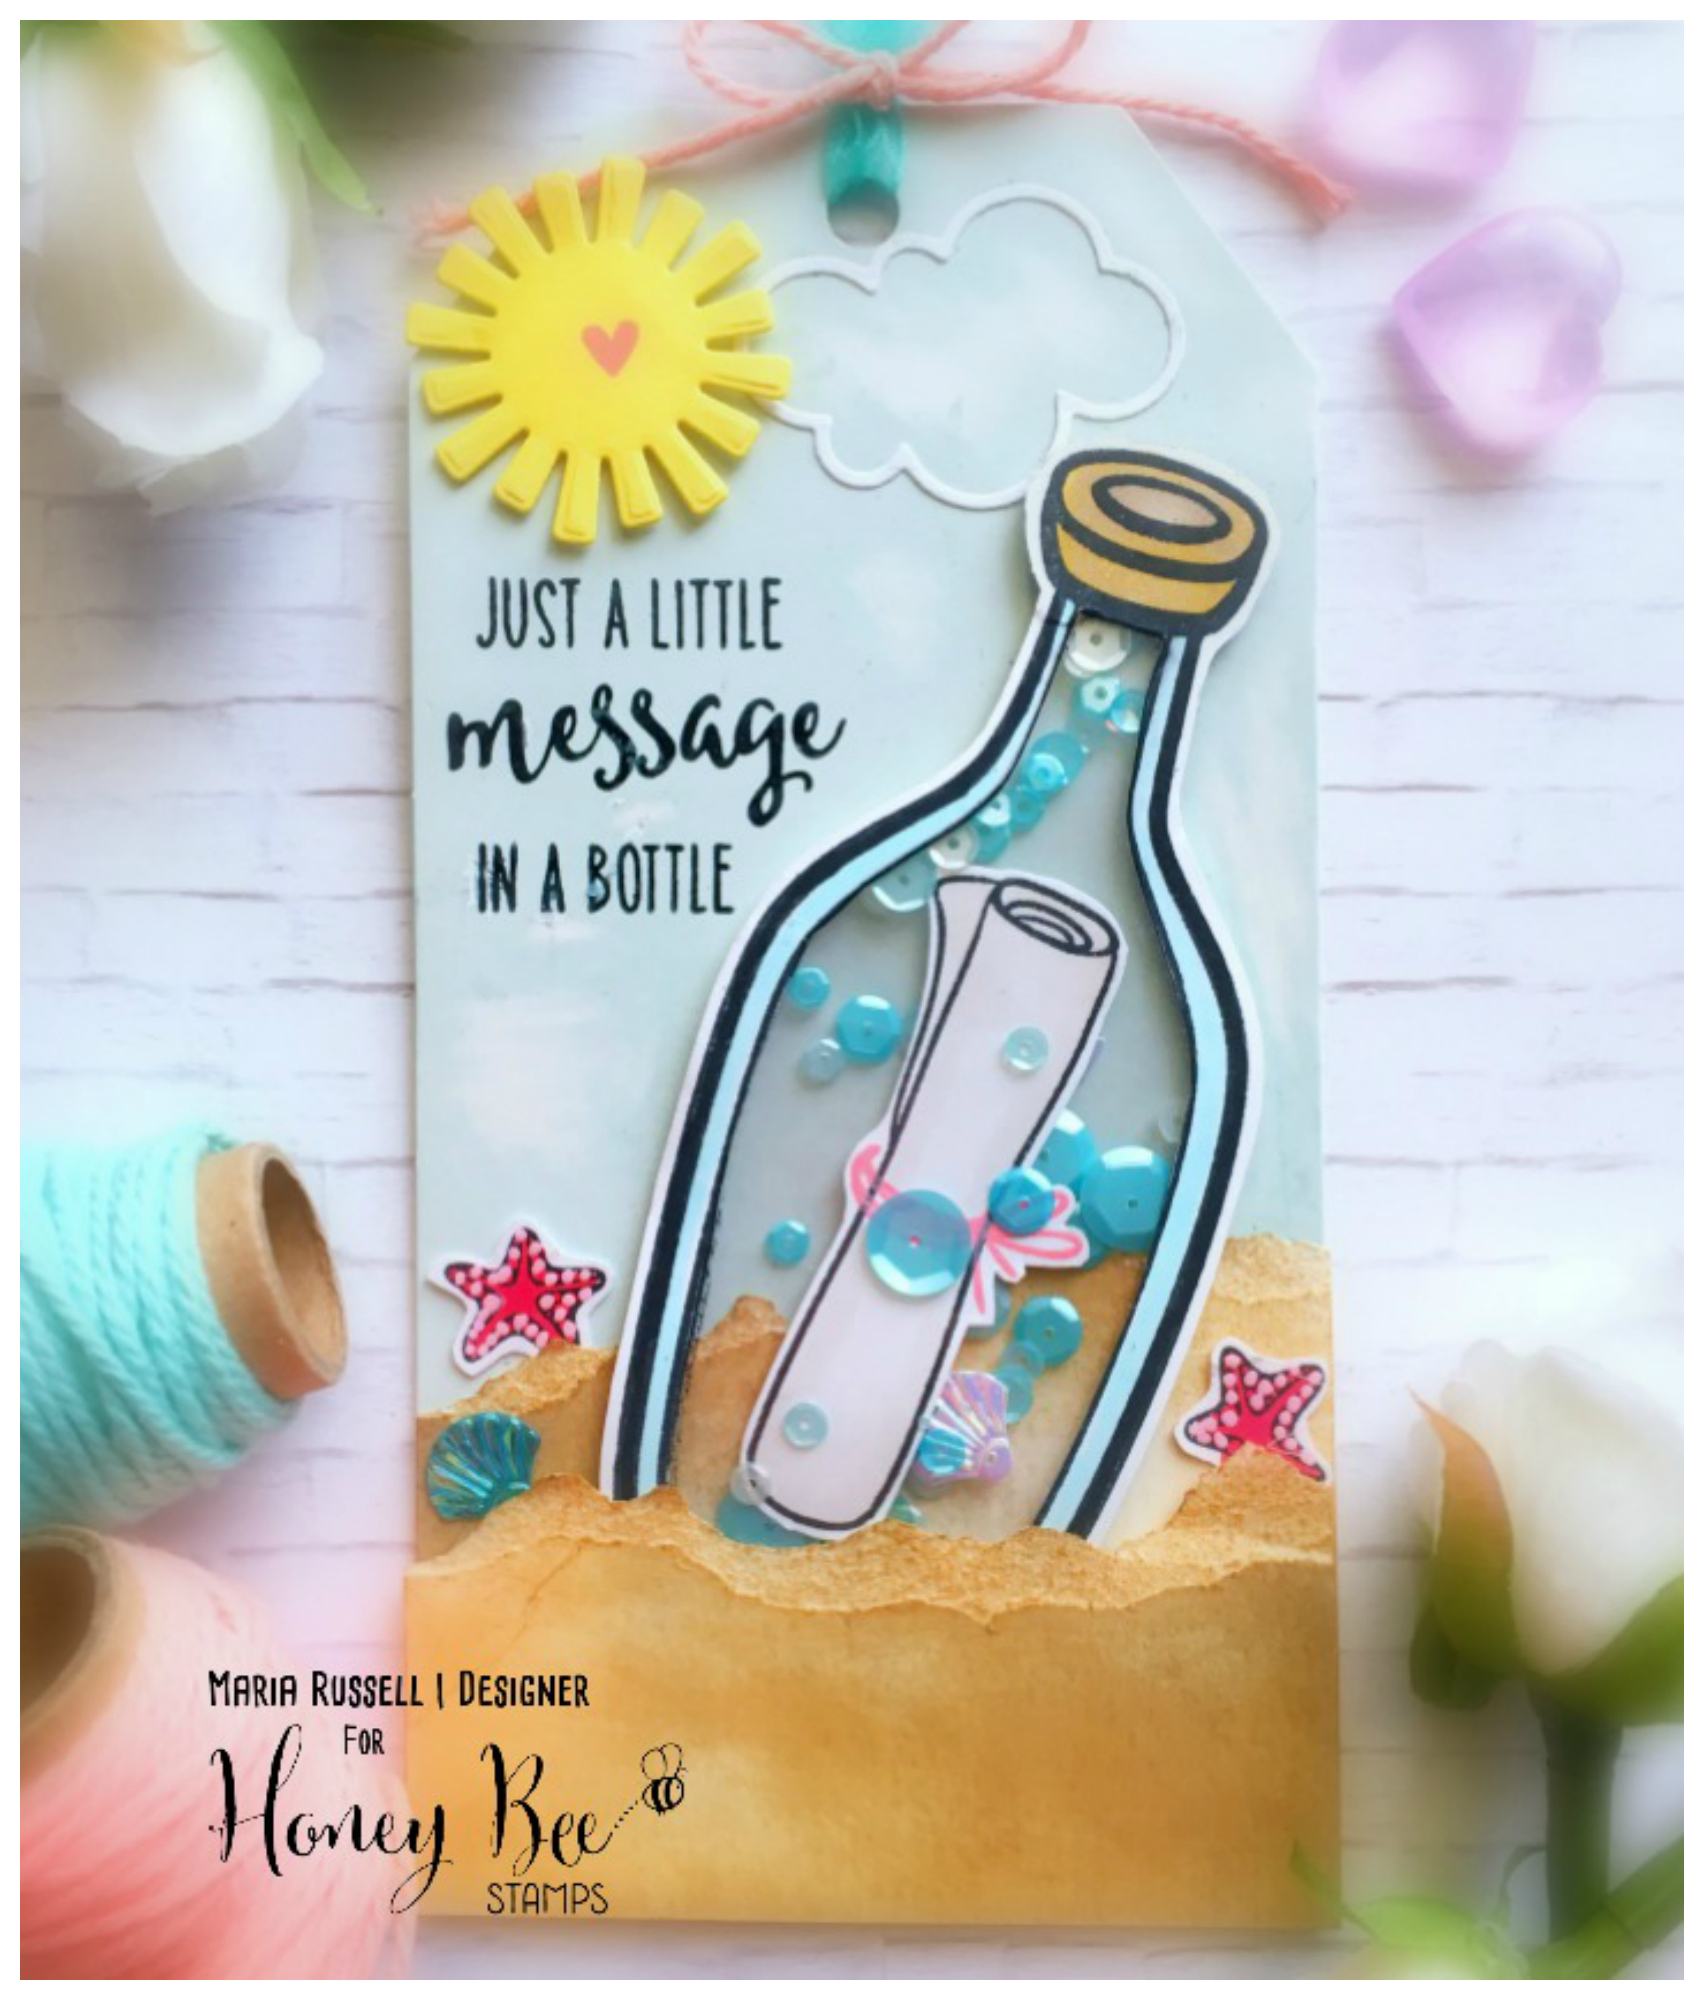 New Release: Day 2 Message in a Bottle